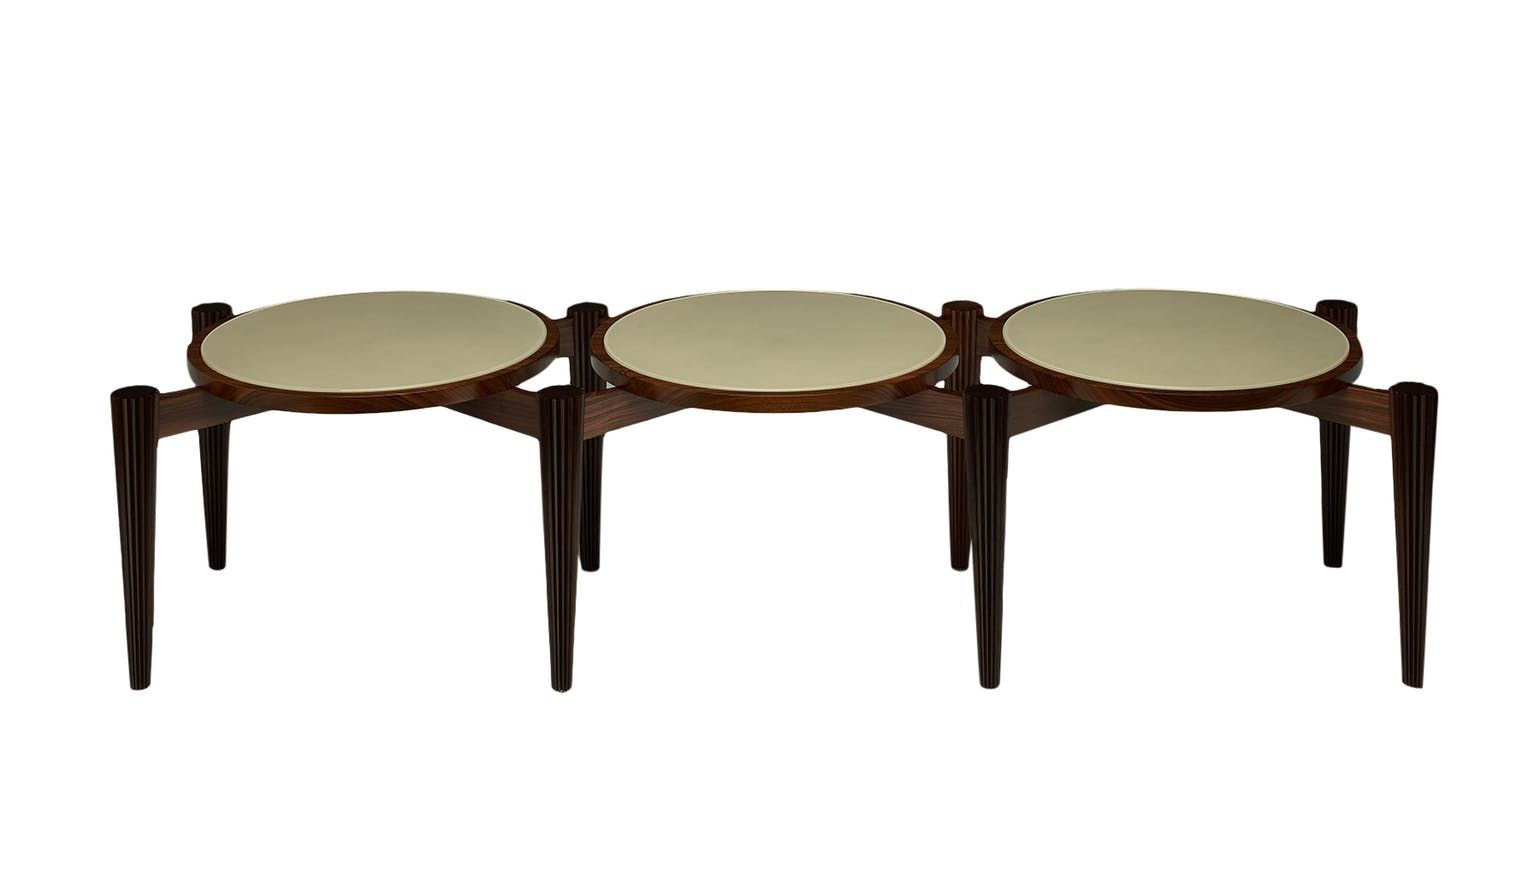 Transitional coffee table - Arachne Coffee Table Contemporary Transitional Midcentury Modern Art Deco Glass Wood